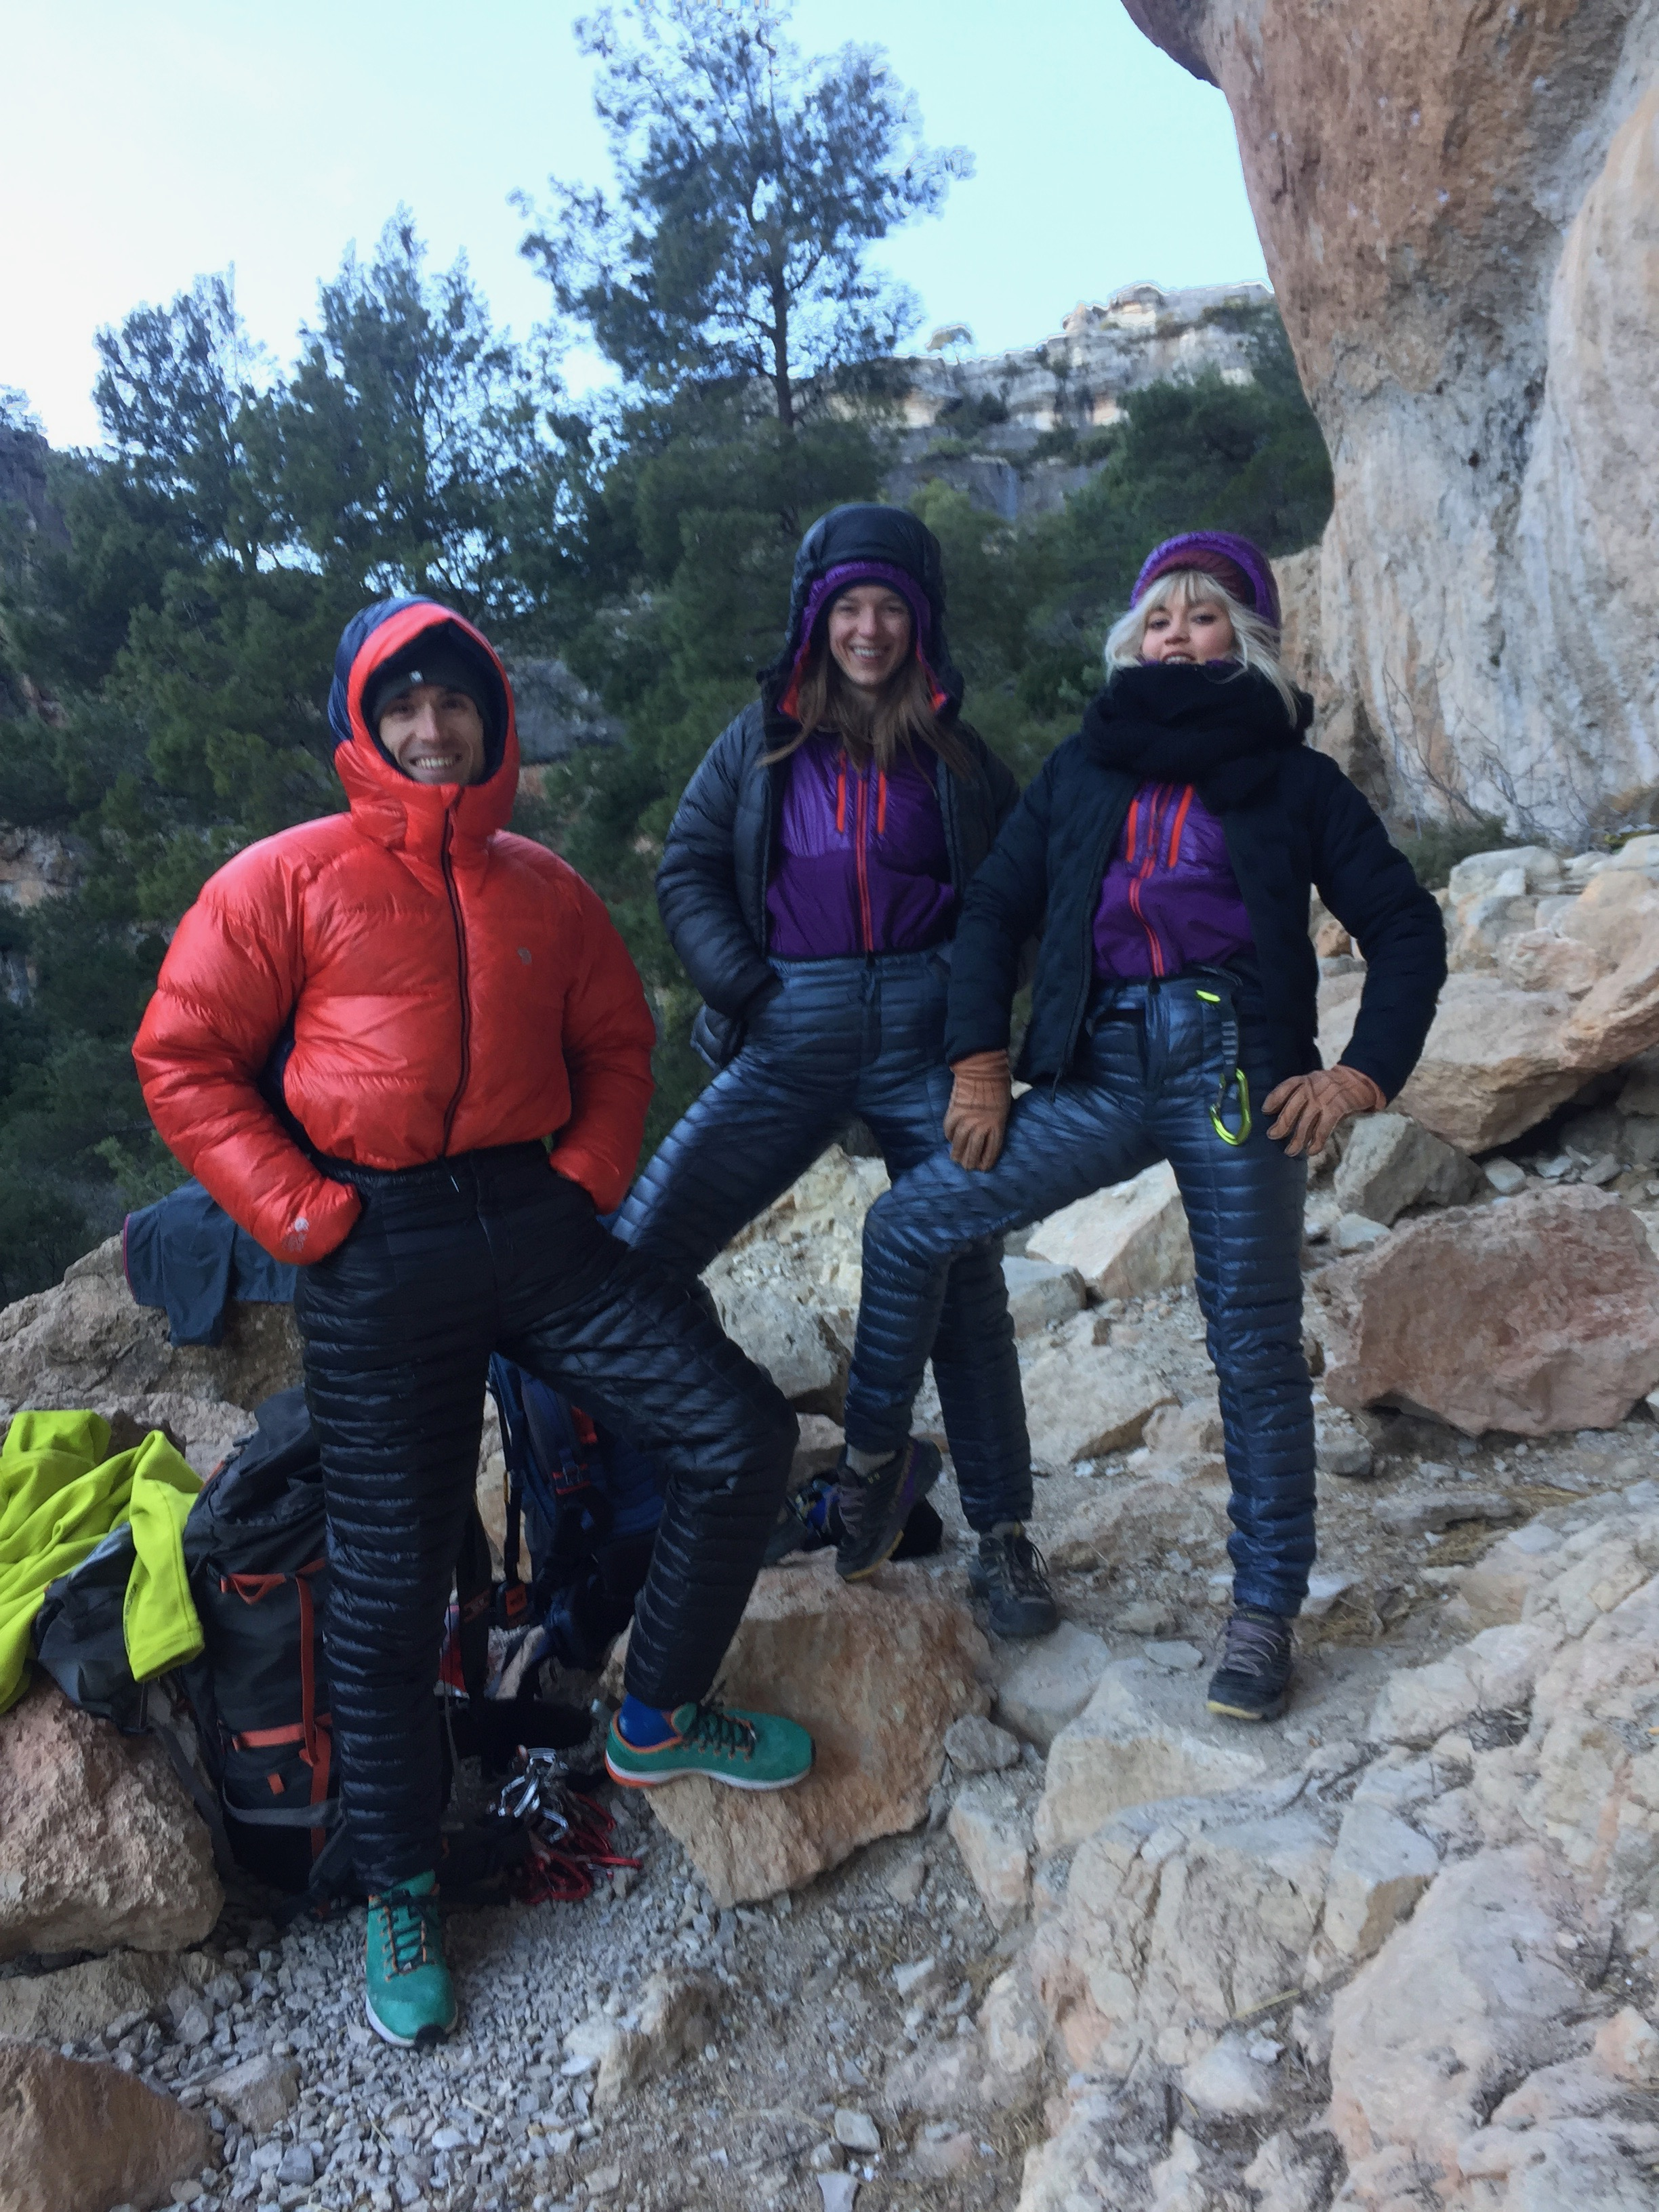 There is no really a bad weather but a bad gear or preparation (or a wrong state of mind?). Good crag company in freezing Siurana 2018! Ethan Pringle from Mountain Hardwear and Stacy from California. We are all wearing Mountain Hardwear    Unisex Ghost Whisperer Downparnts    which are for sure THE BEST downpants designed for climbers.